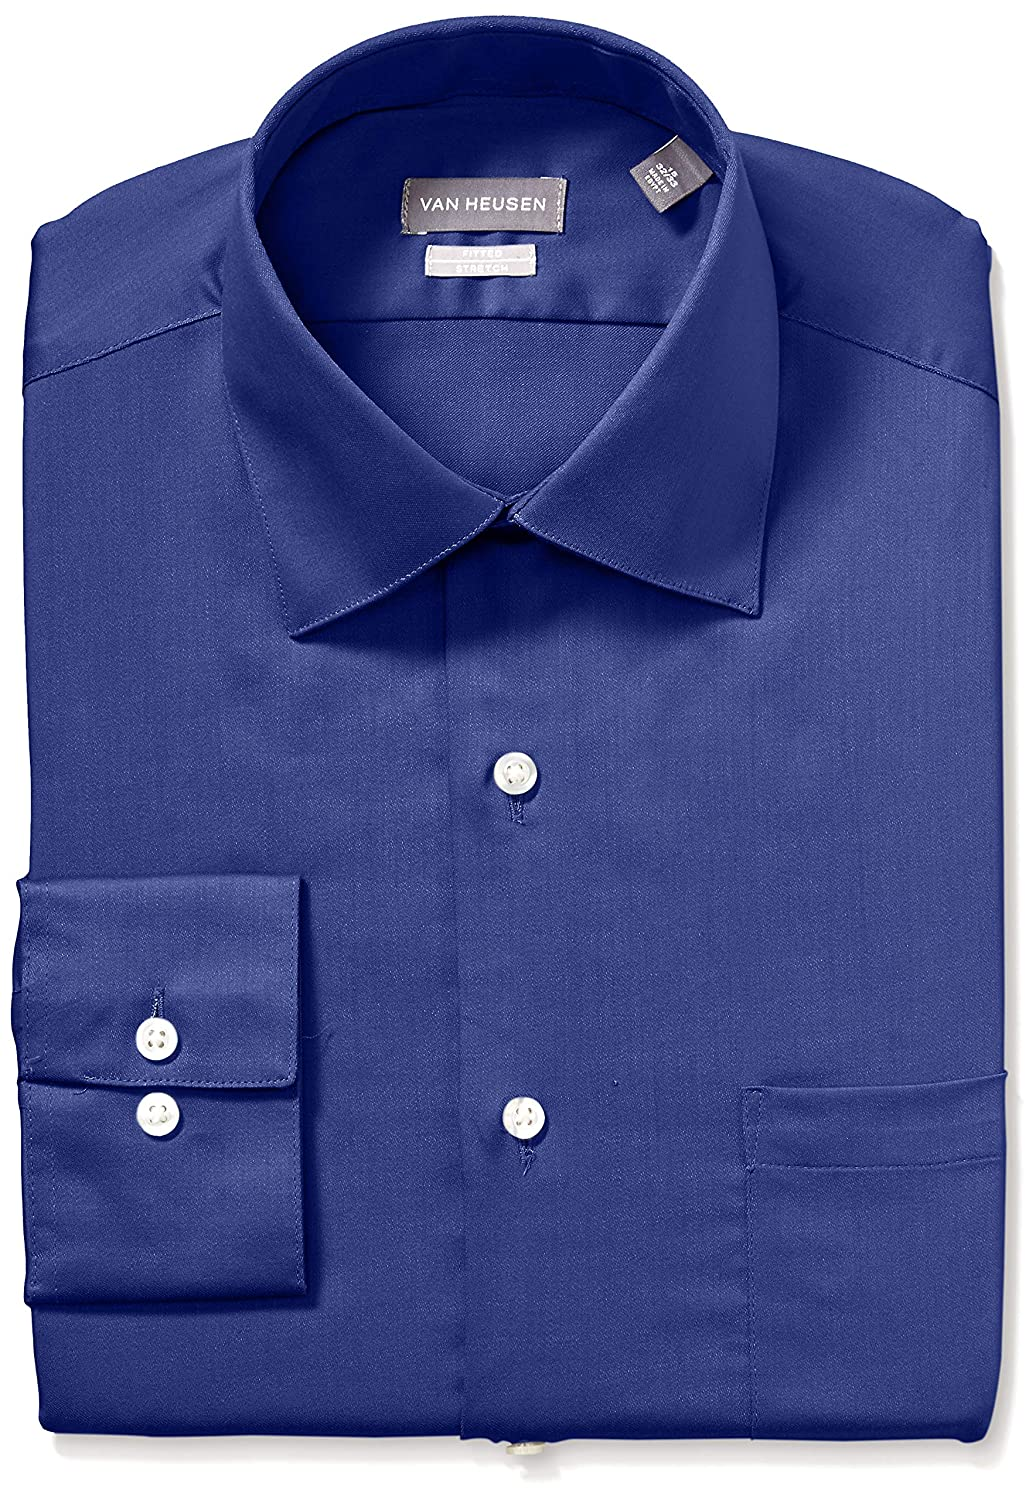 Van Heusen Mens Dress Shirts Fitted Lux Sateen Stretch Solid Spread